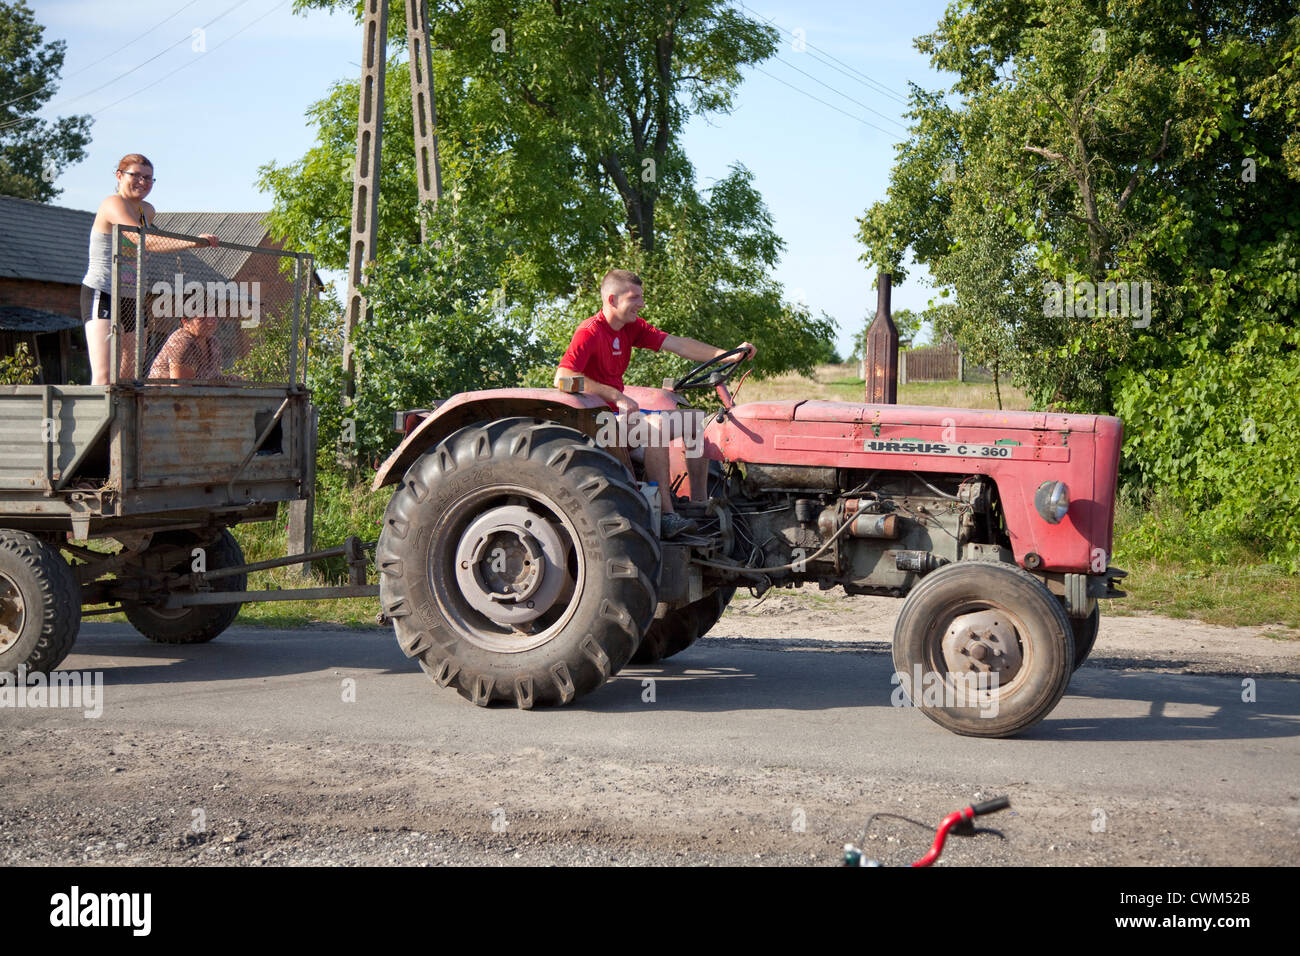 Polish man driving tractor and cart carrying two women along village lane. Mala Wola Central Poland Stock Photo